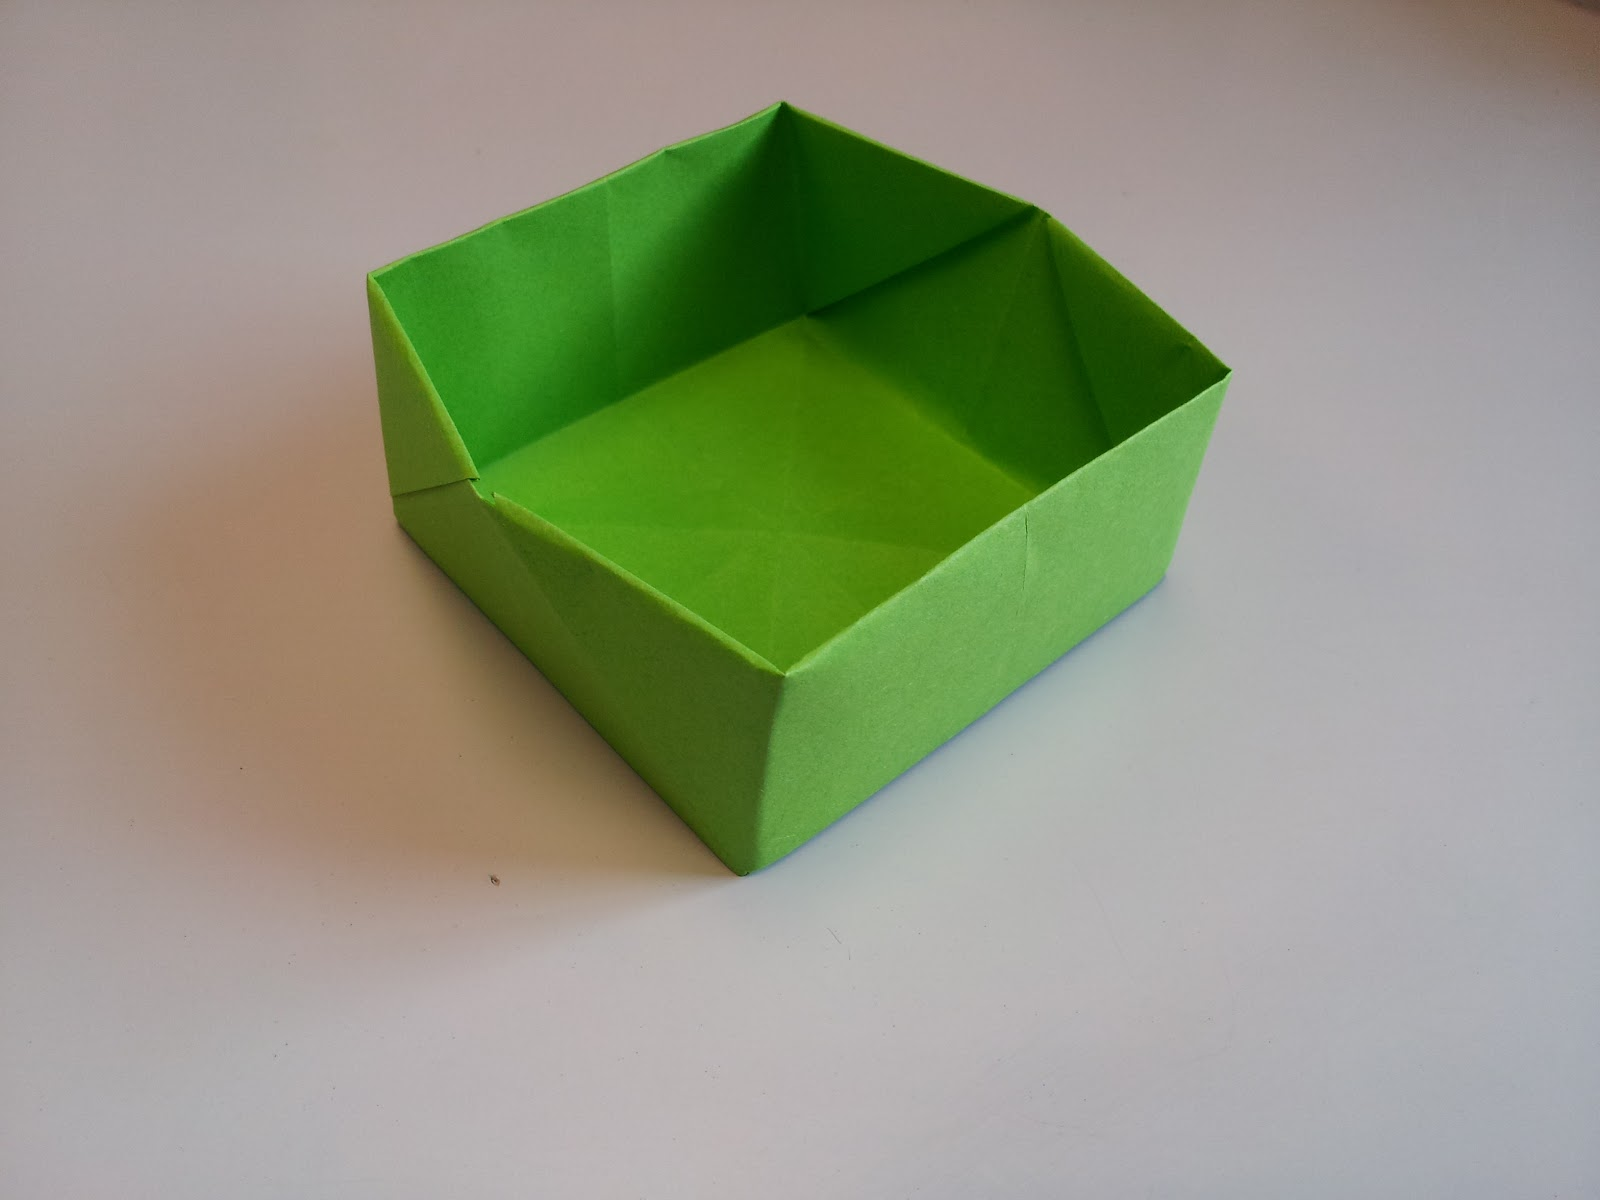 Paper Moon: How to Make an Origami Box - photo#21